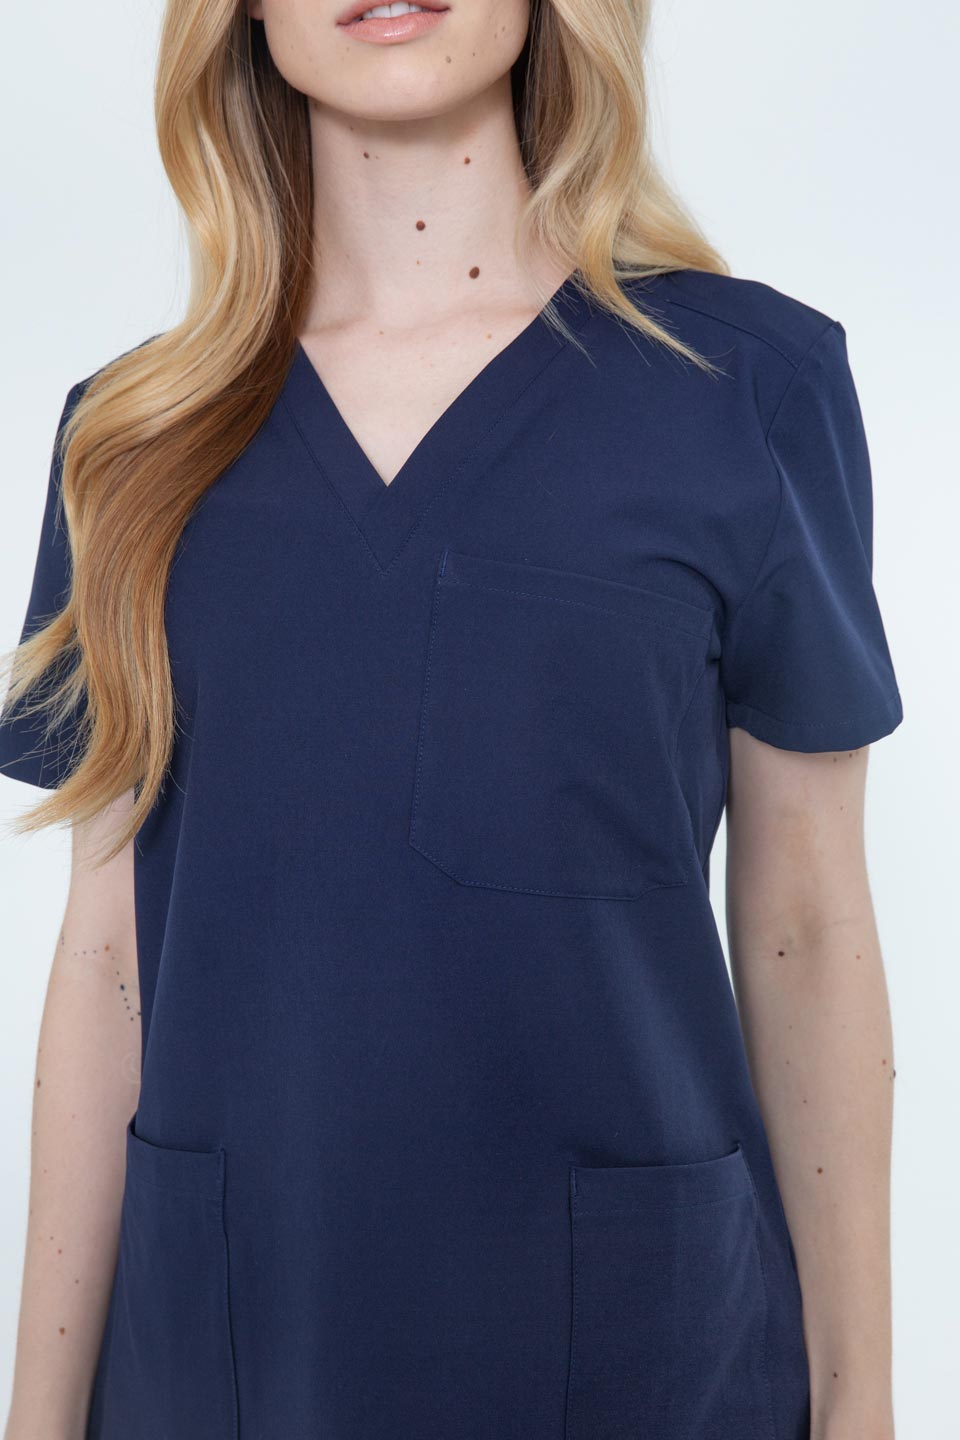 Kalea - Womens Reverie Scrub Top - Navy